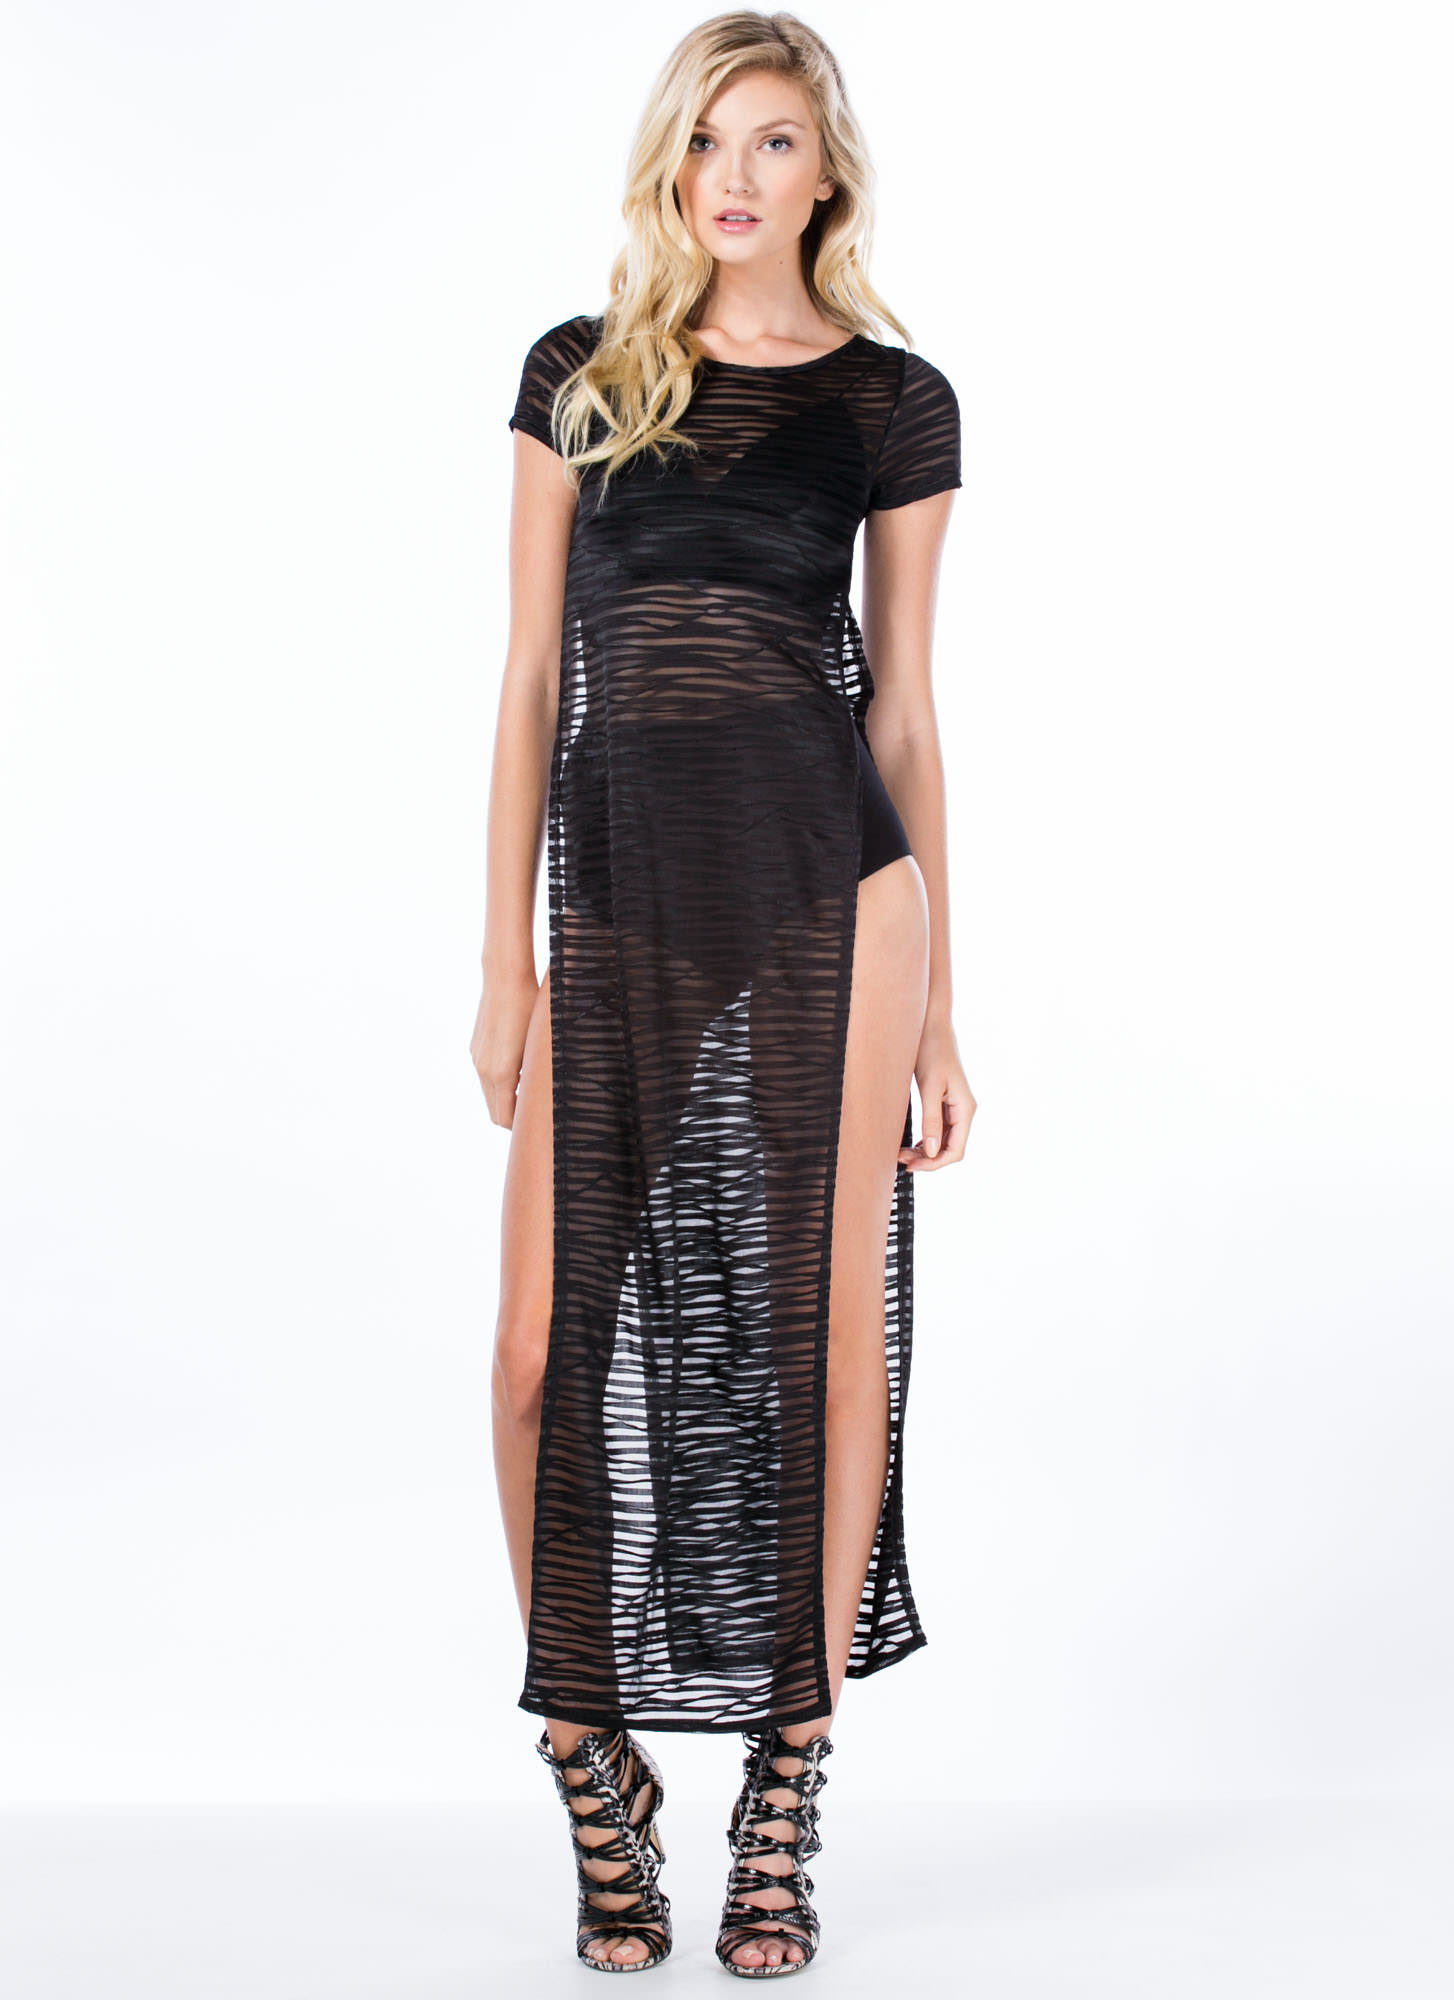 Swirled 'N Shadow Striped Maxi Dress BLACK